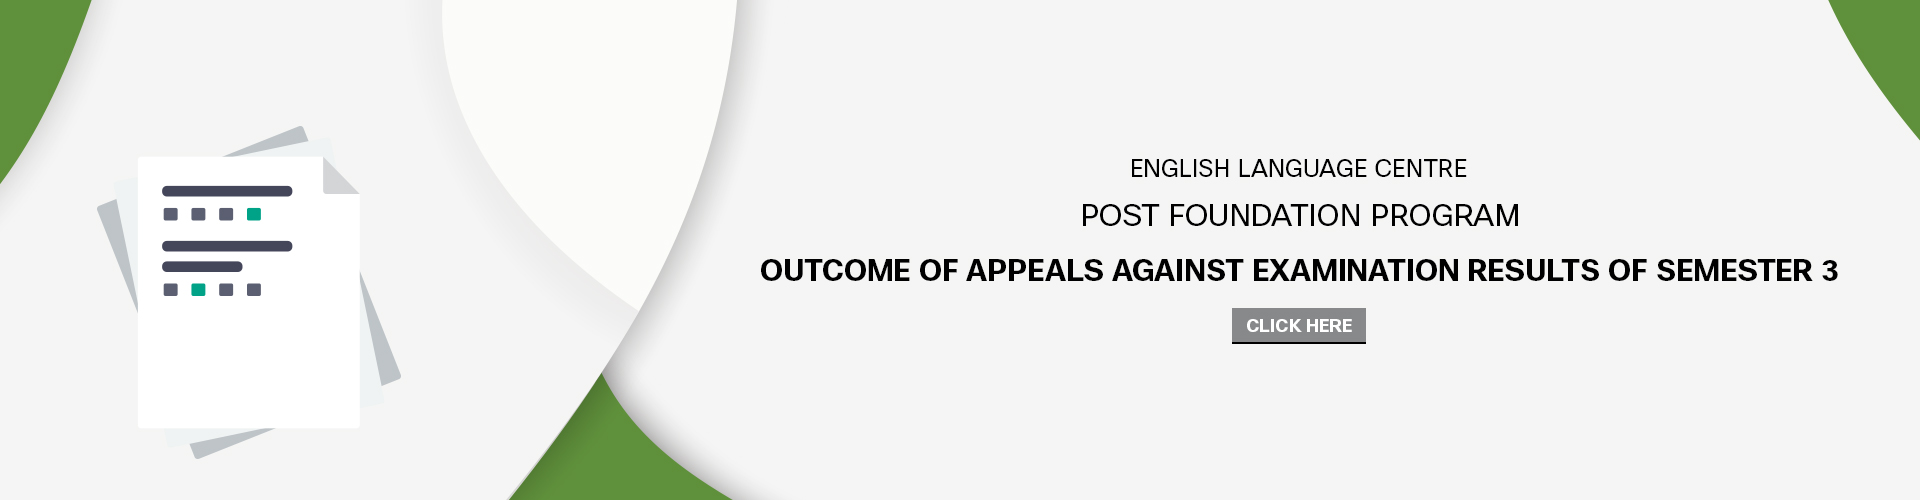 English Language Center - Outcome of Student Appeals against Examination Results -Semester 3 AY(2017-2018)